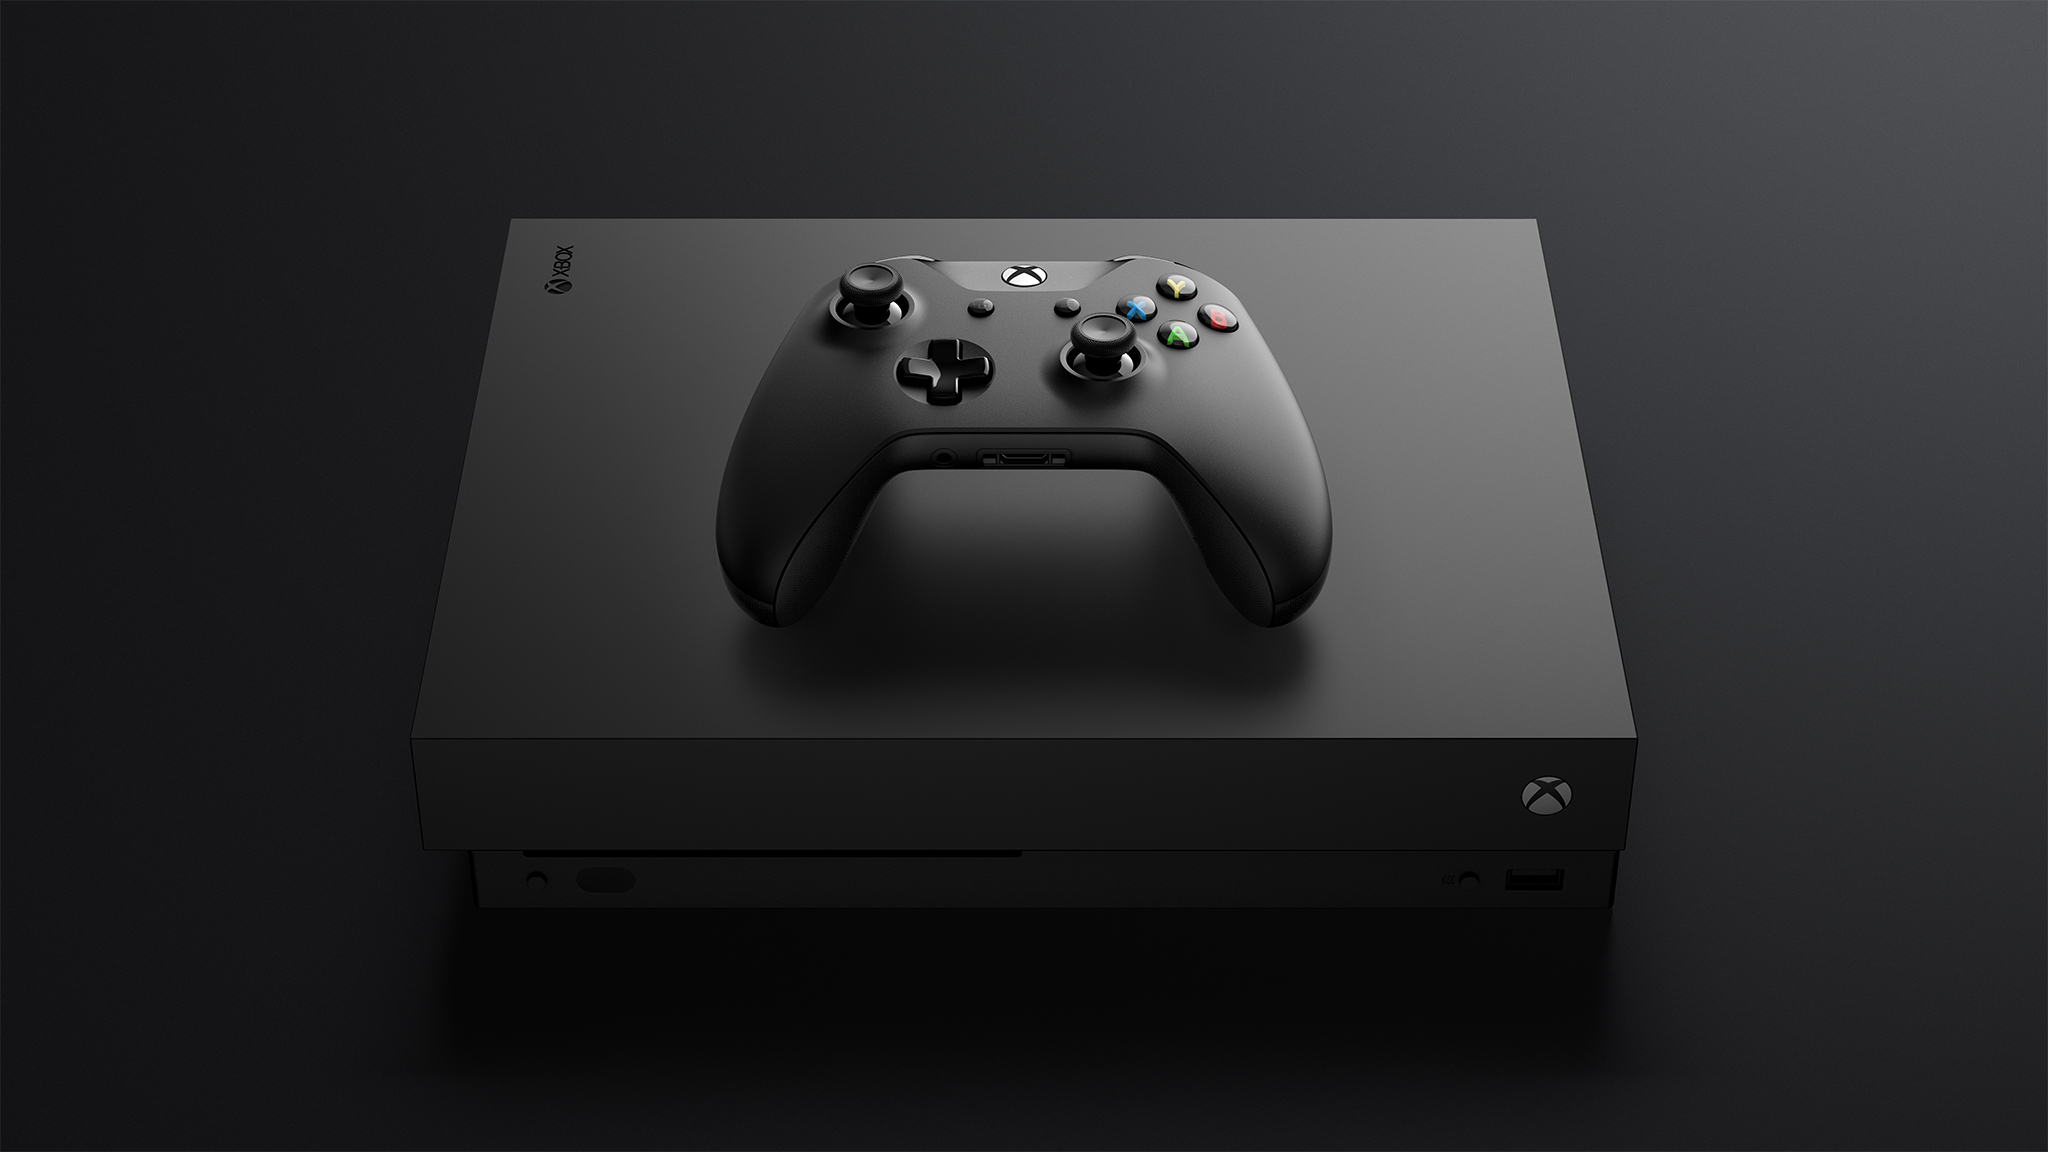 Xbox One X - now available in regular flavour